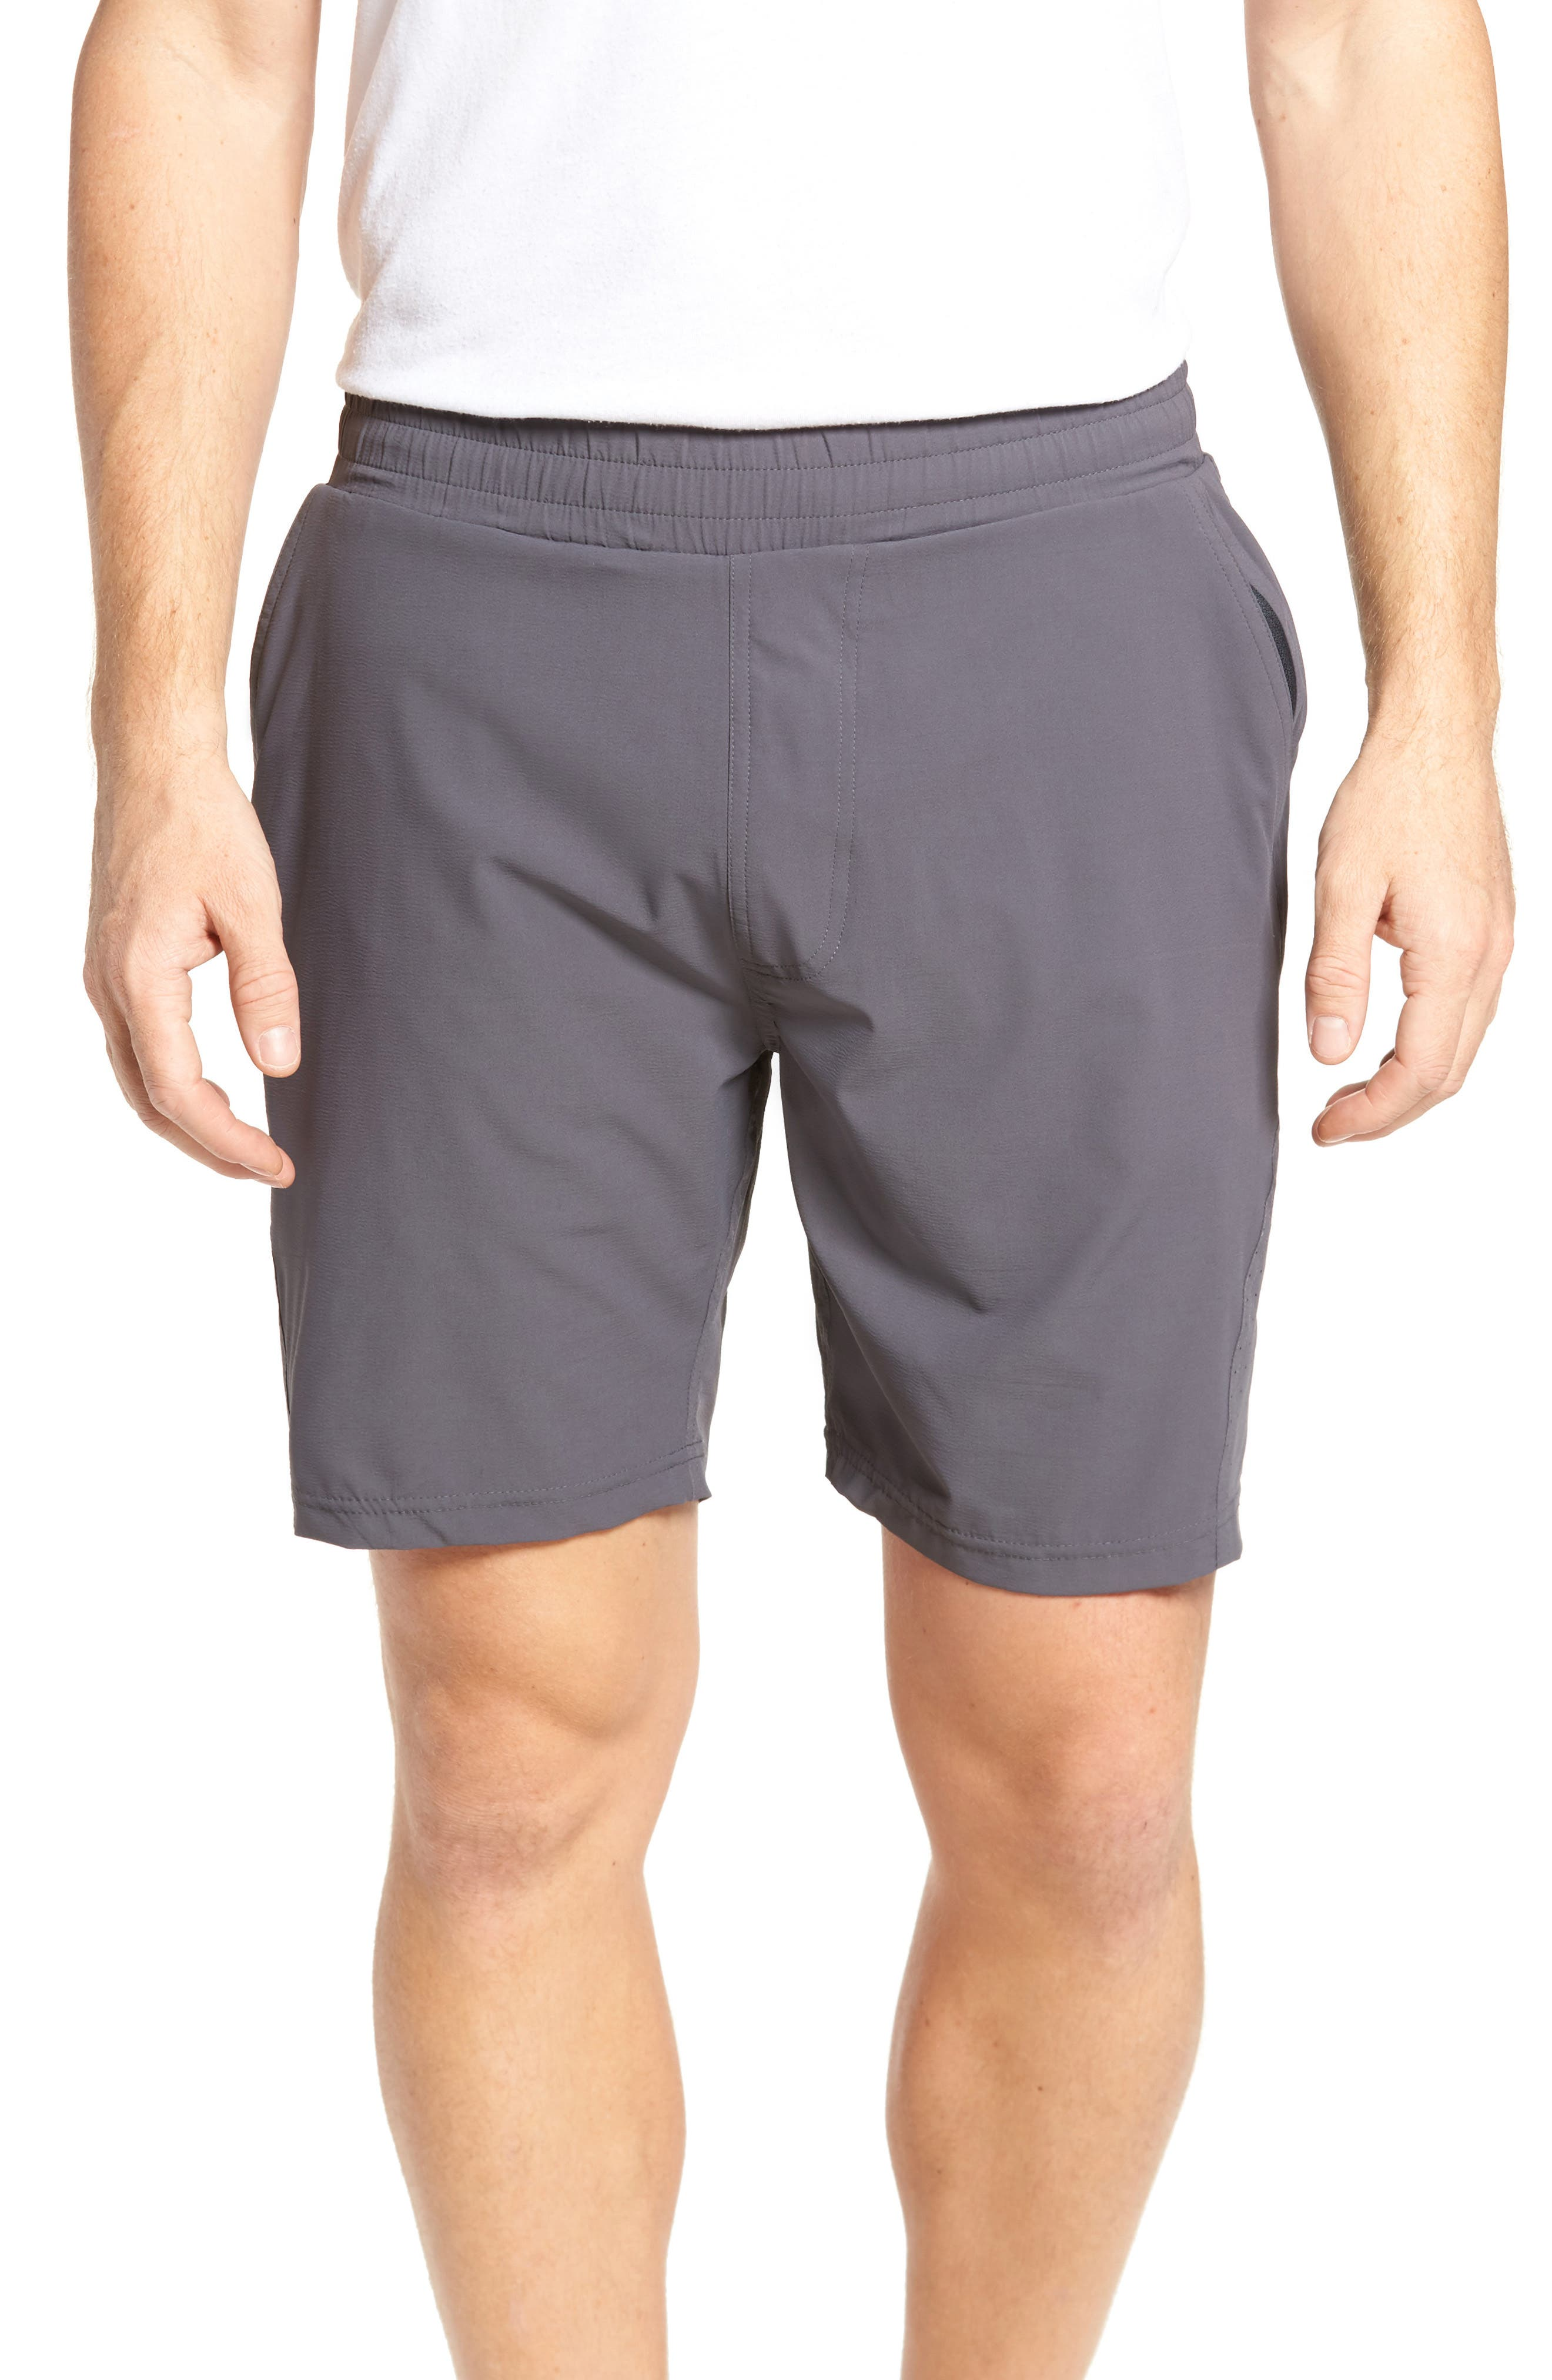 Tasc Performance Charge Water Resistant Athletic Shorts, Grey